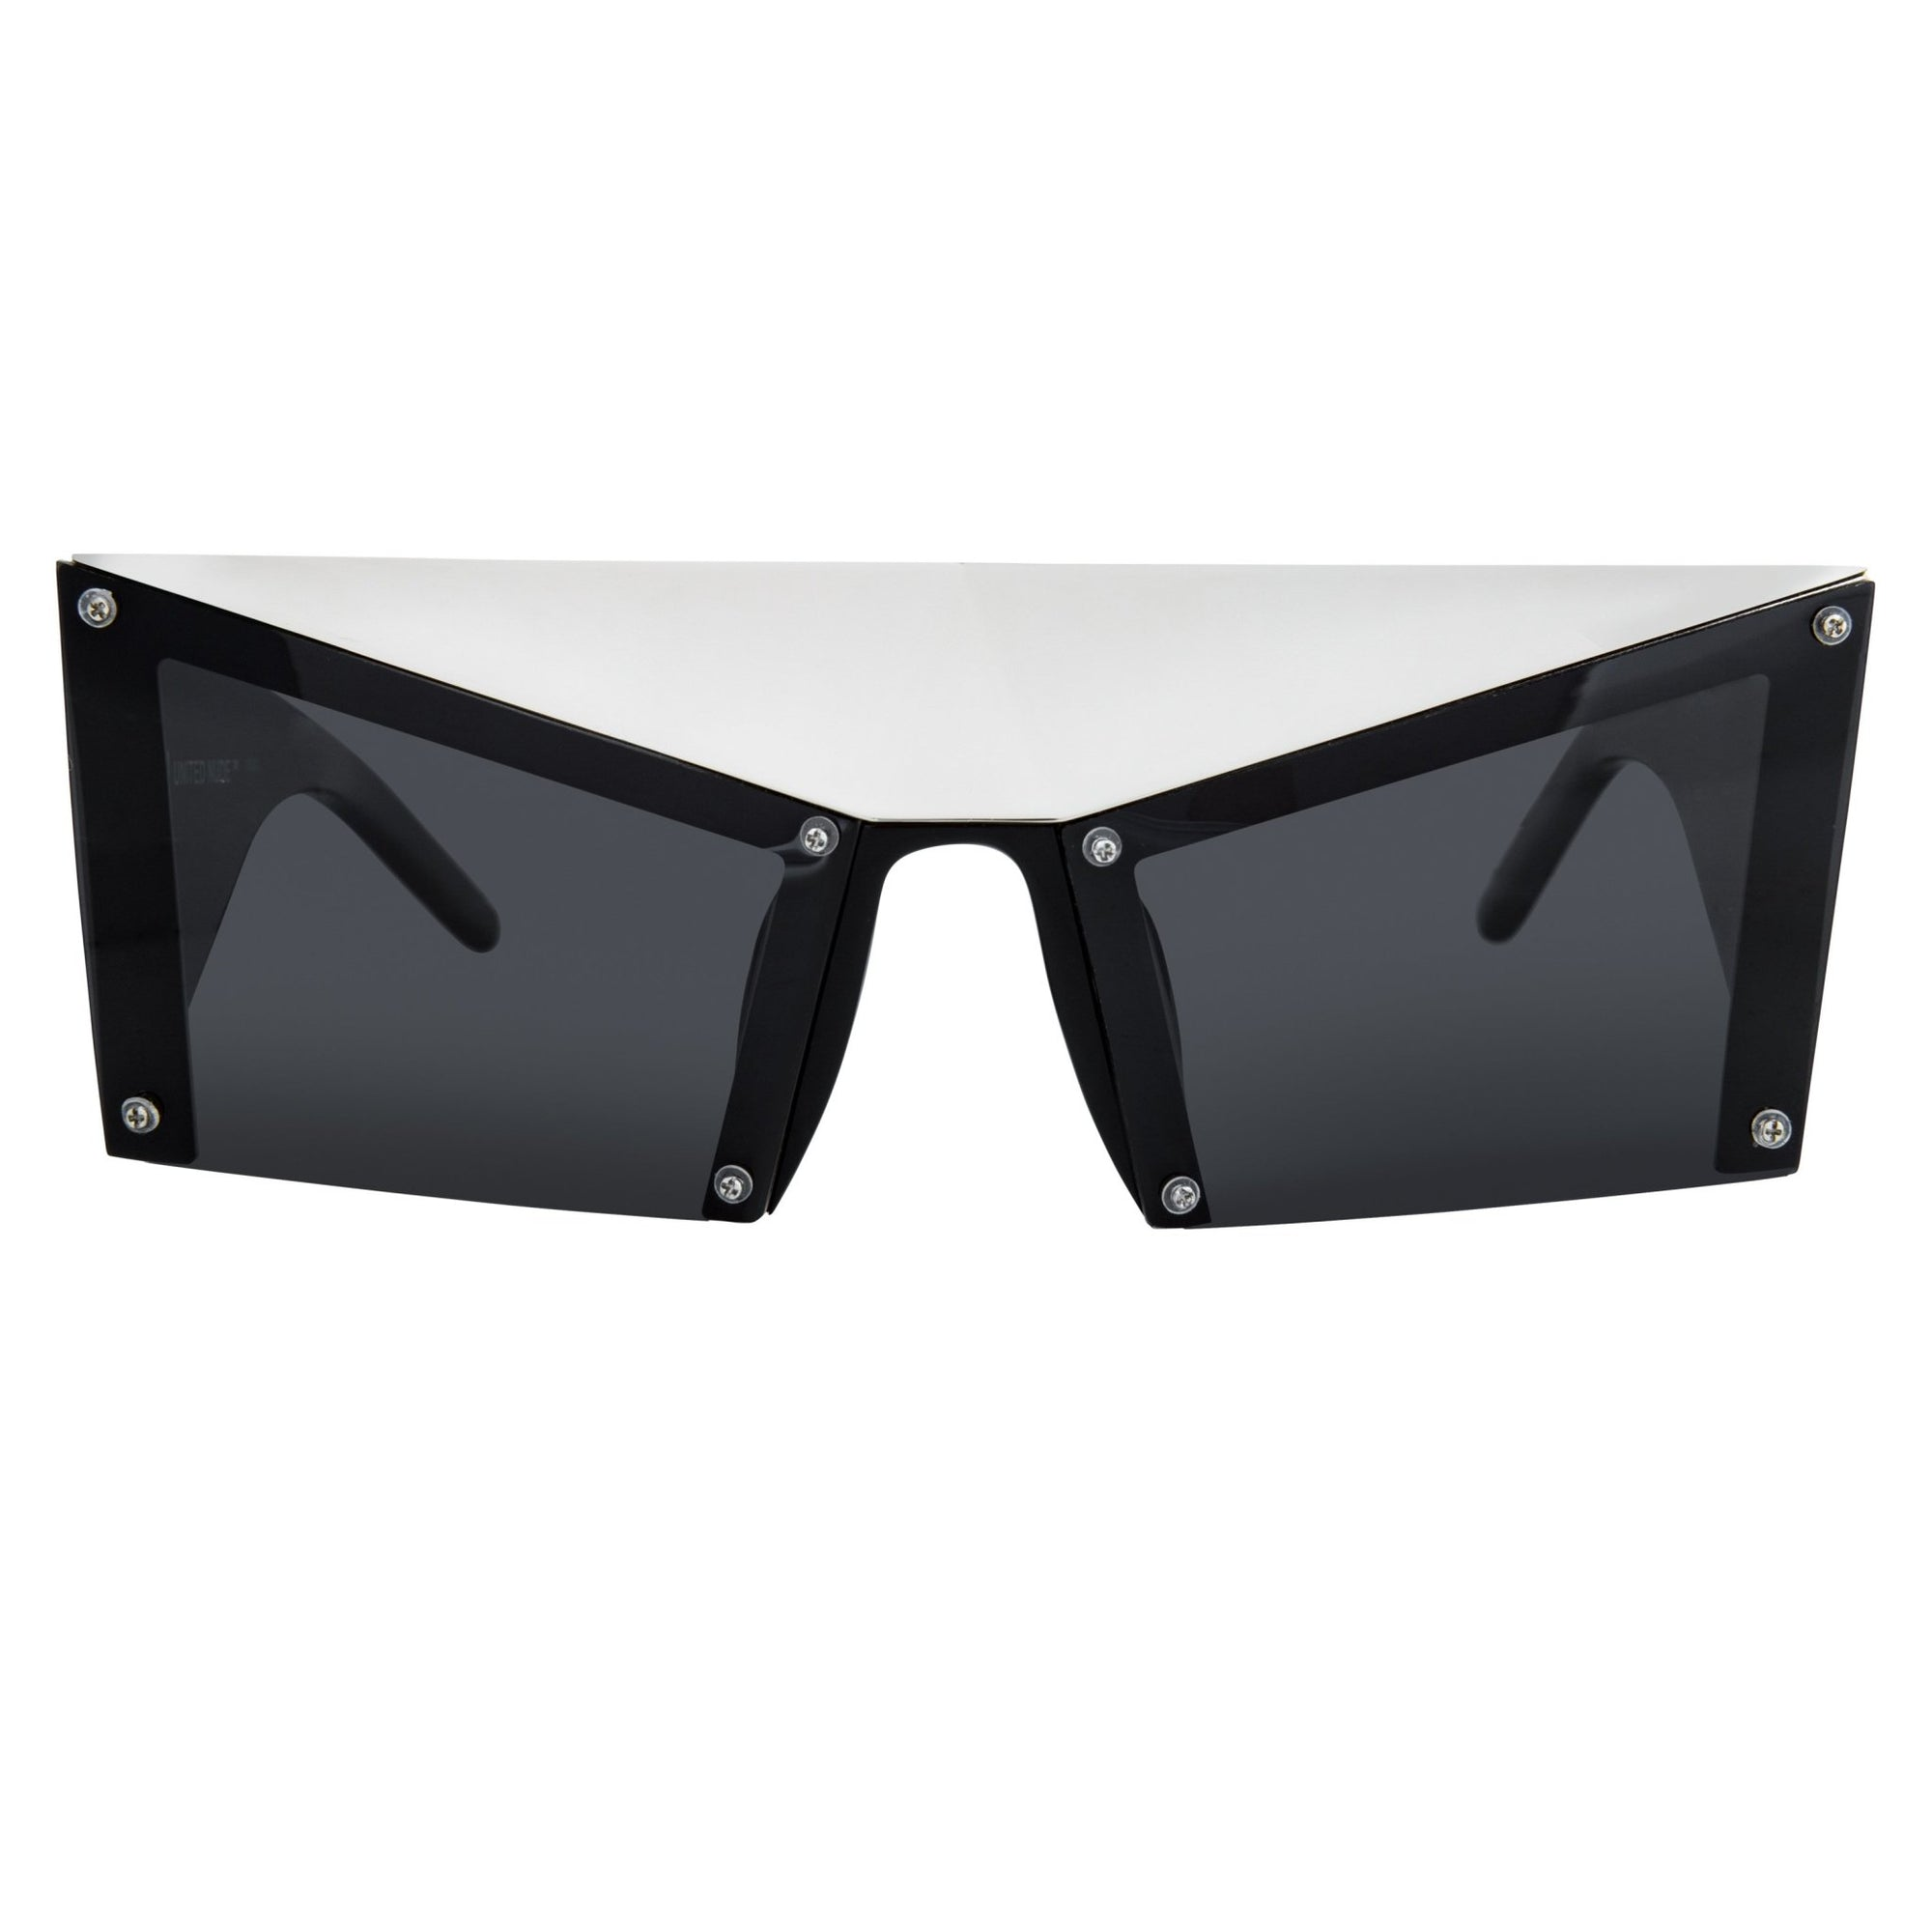 United Nude Sunglasses Special Silver Black With Grey Lenses Category 3 UN1C2SUN - Watches & Crystals